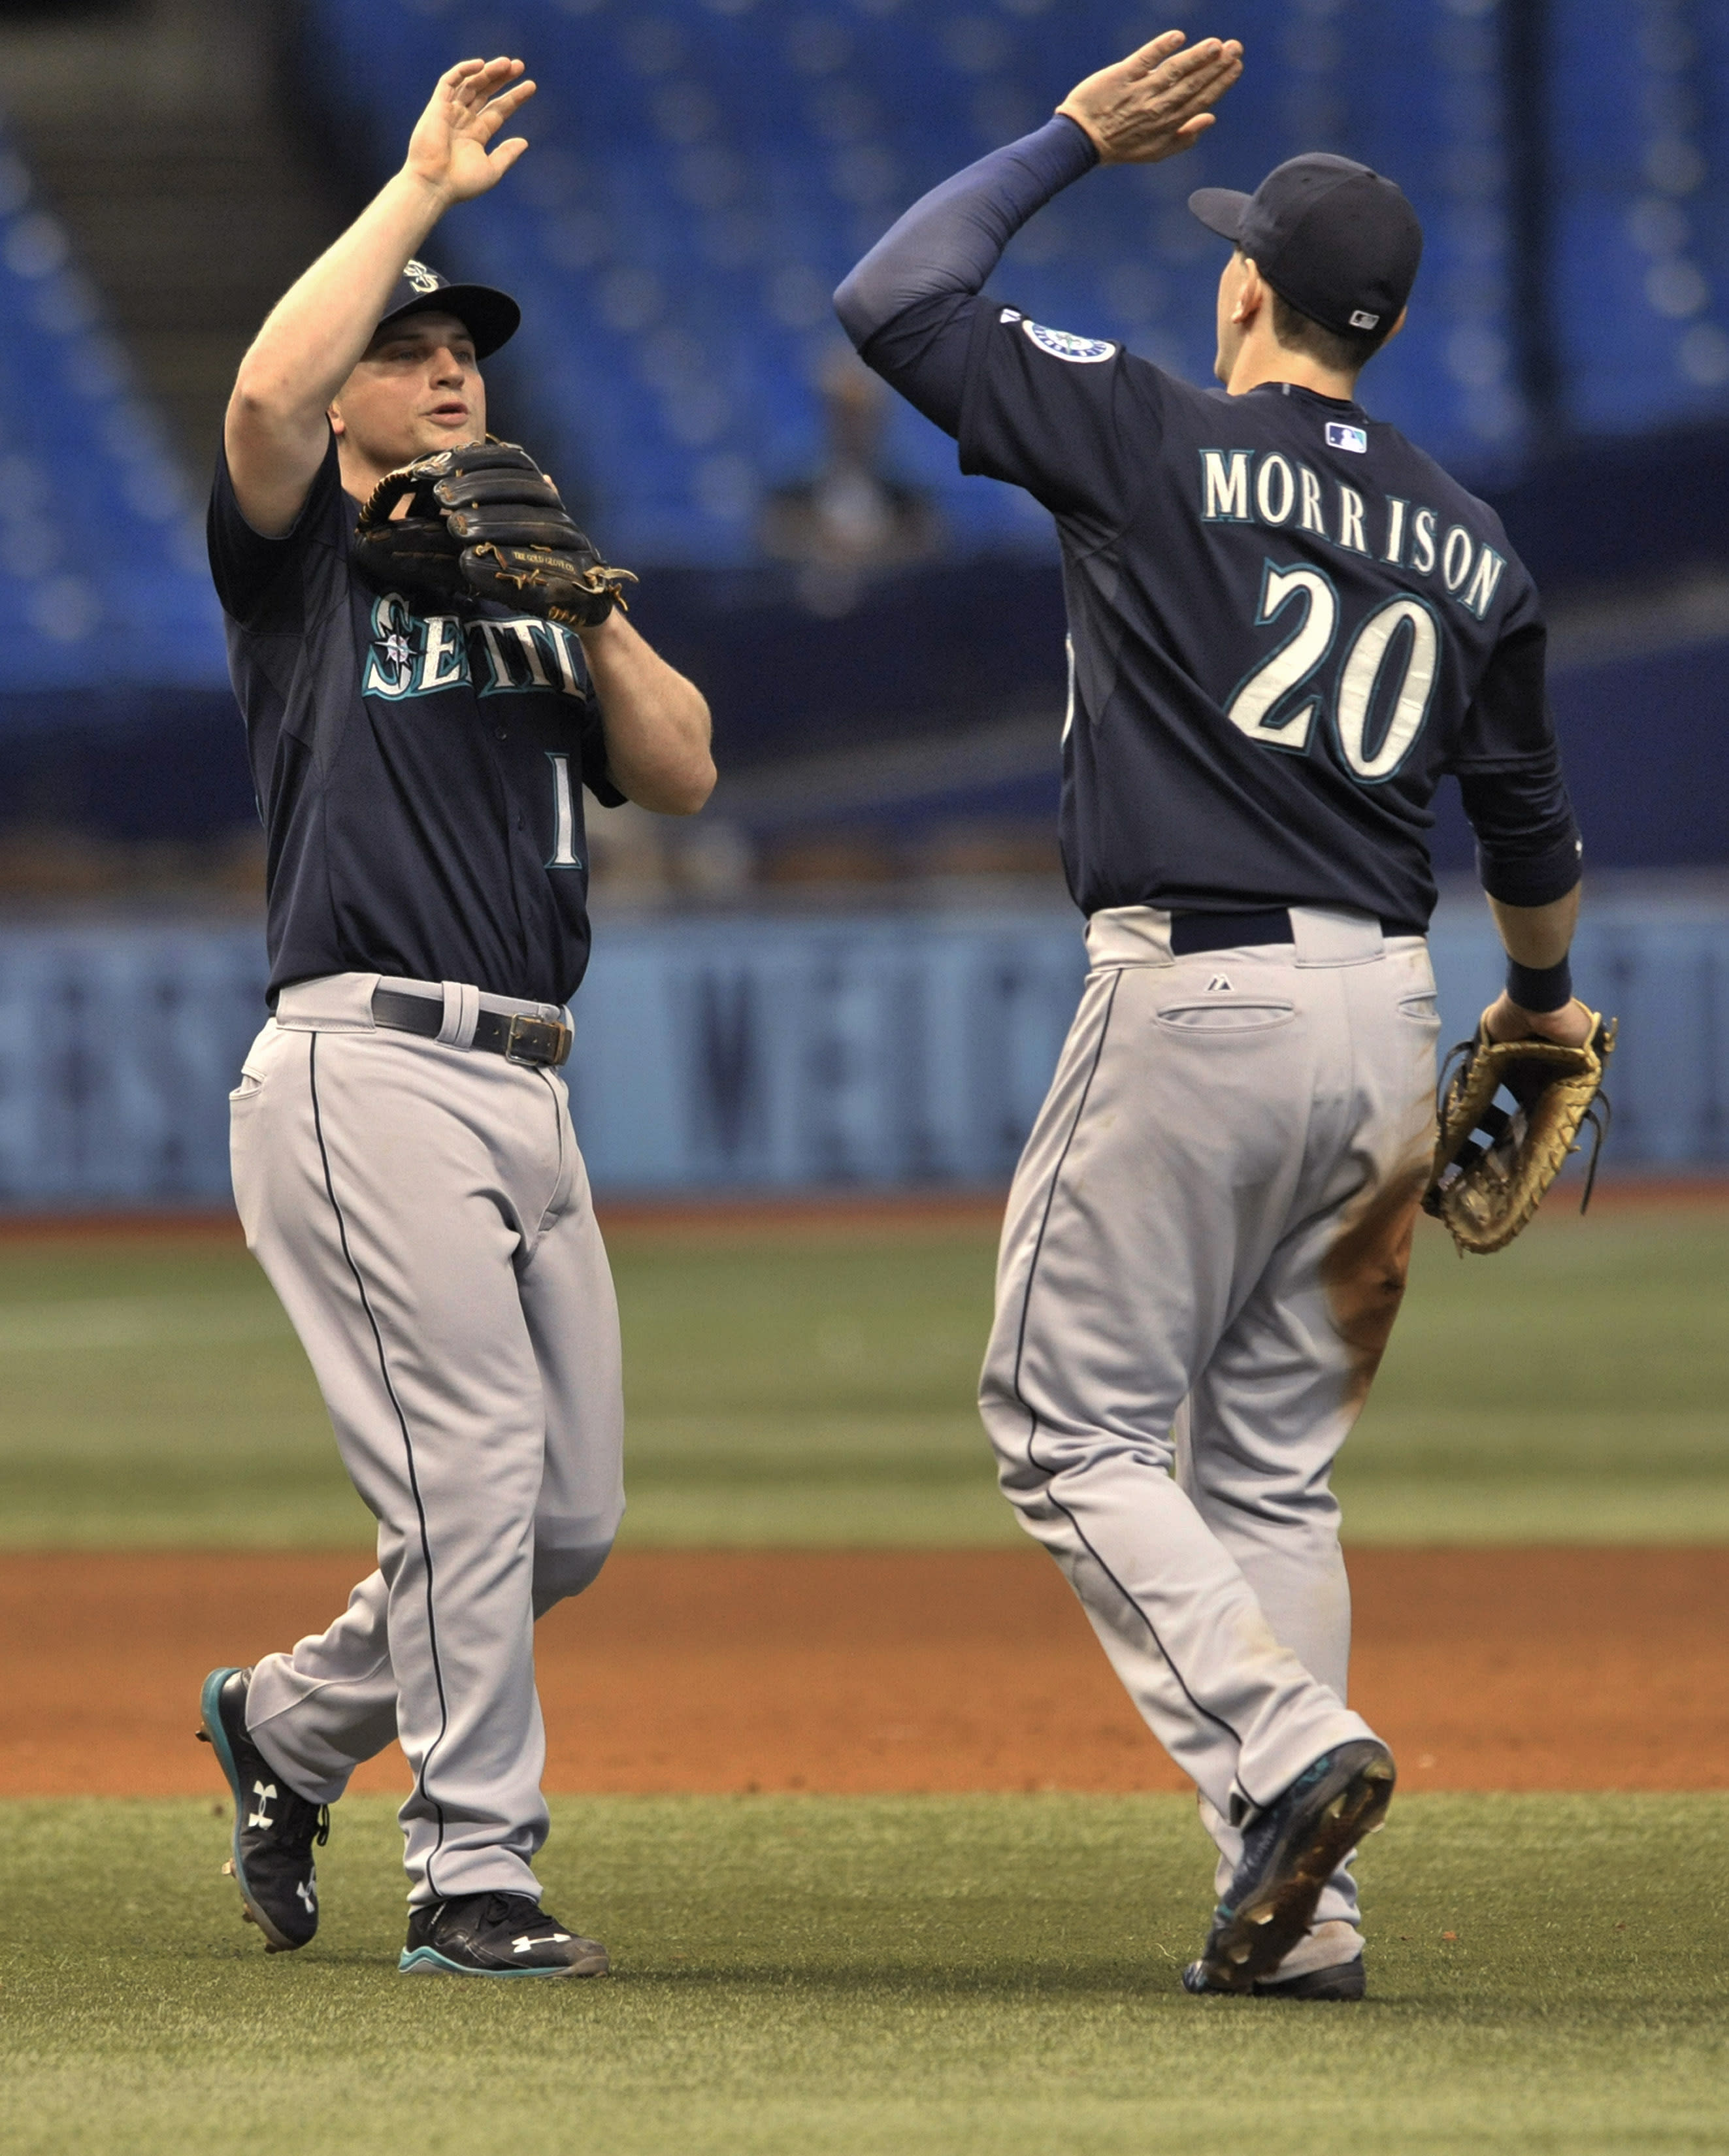 Seager powers Mariners over Rays, 7-6 in 10